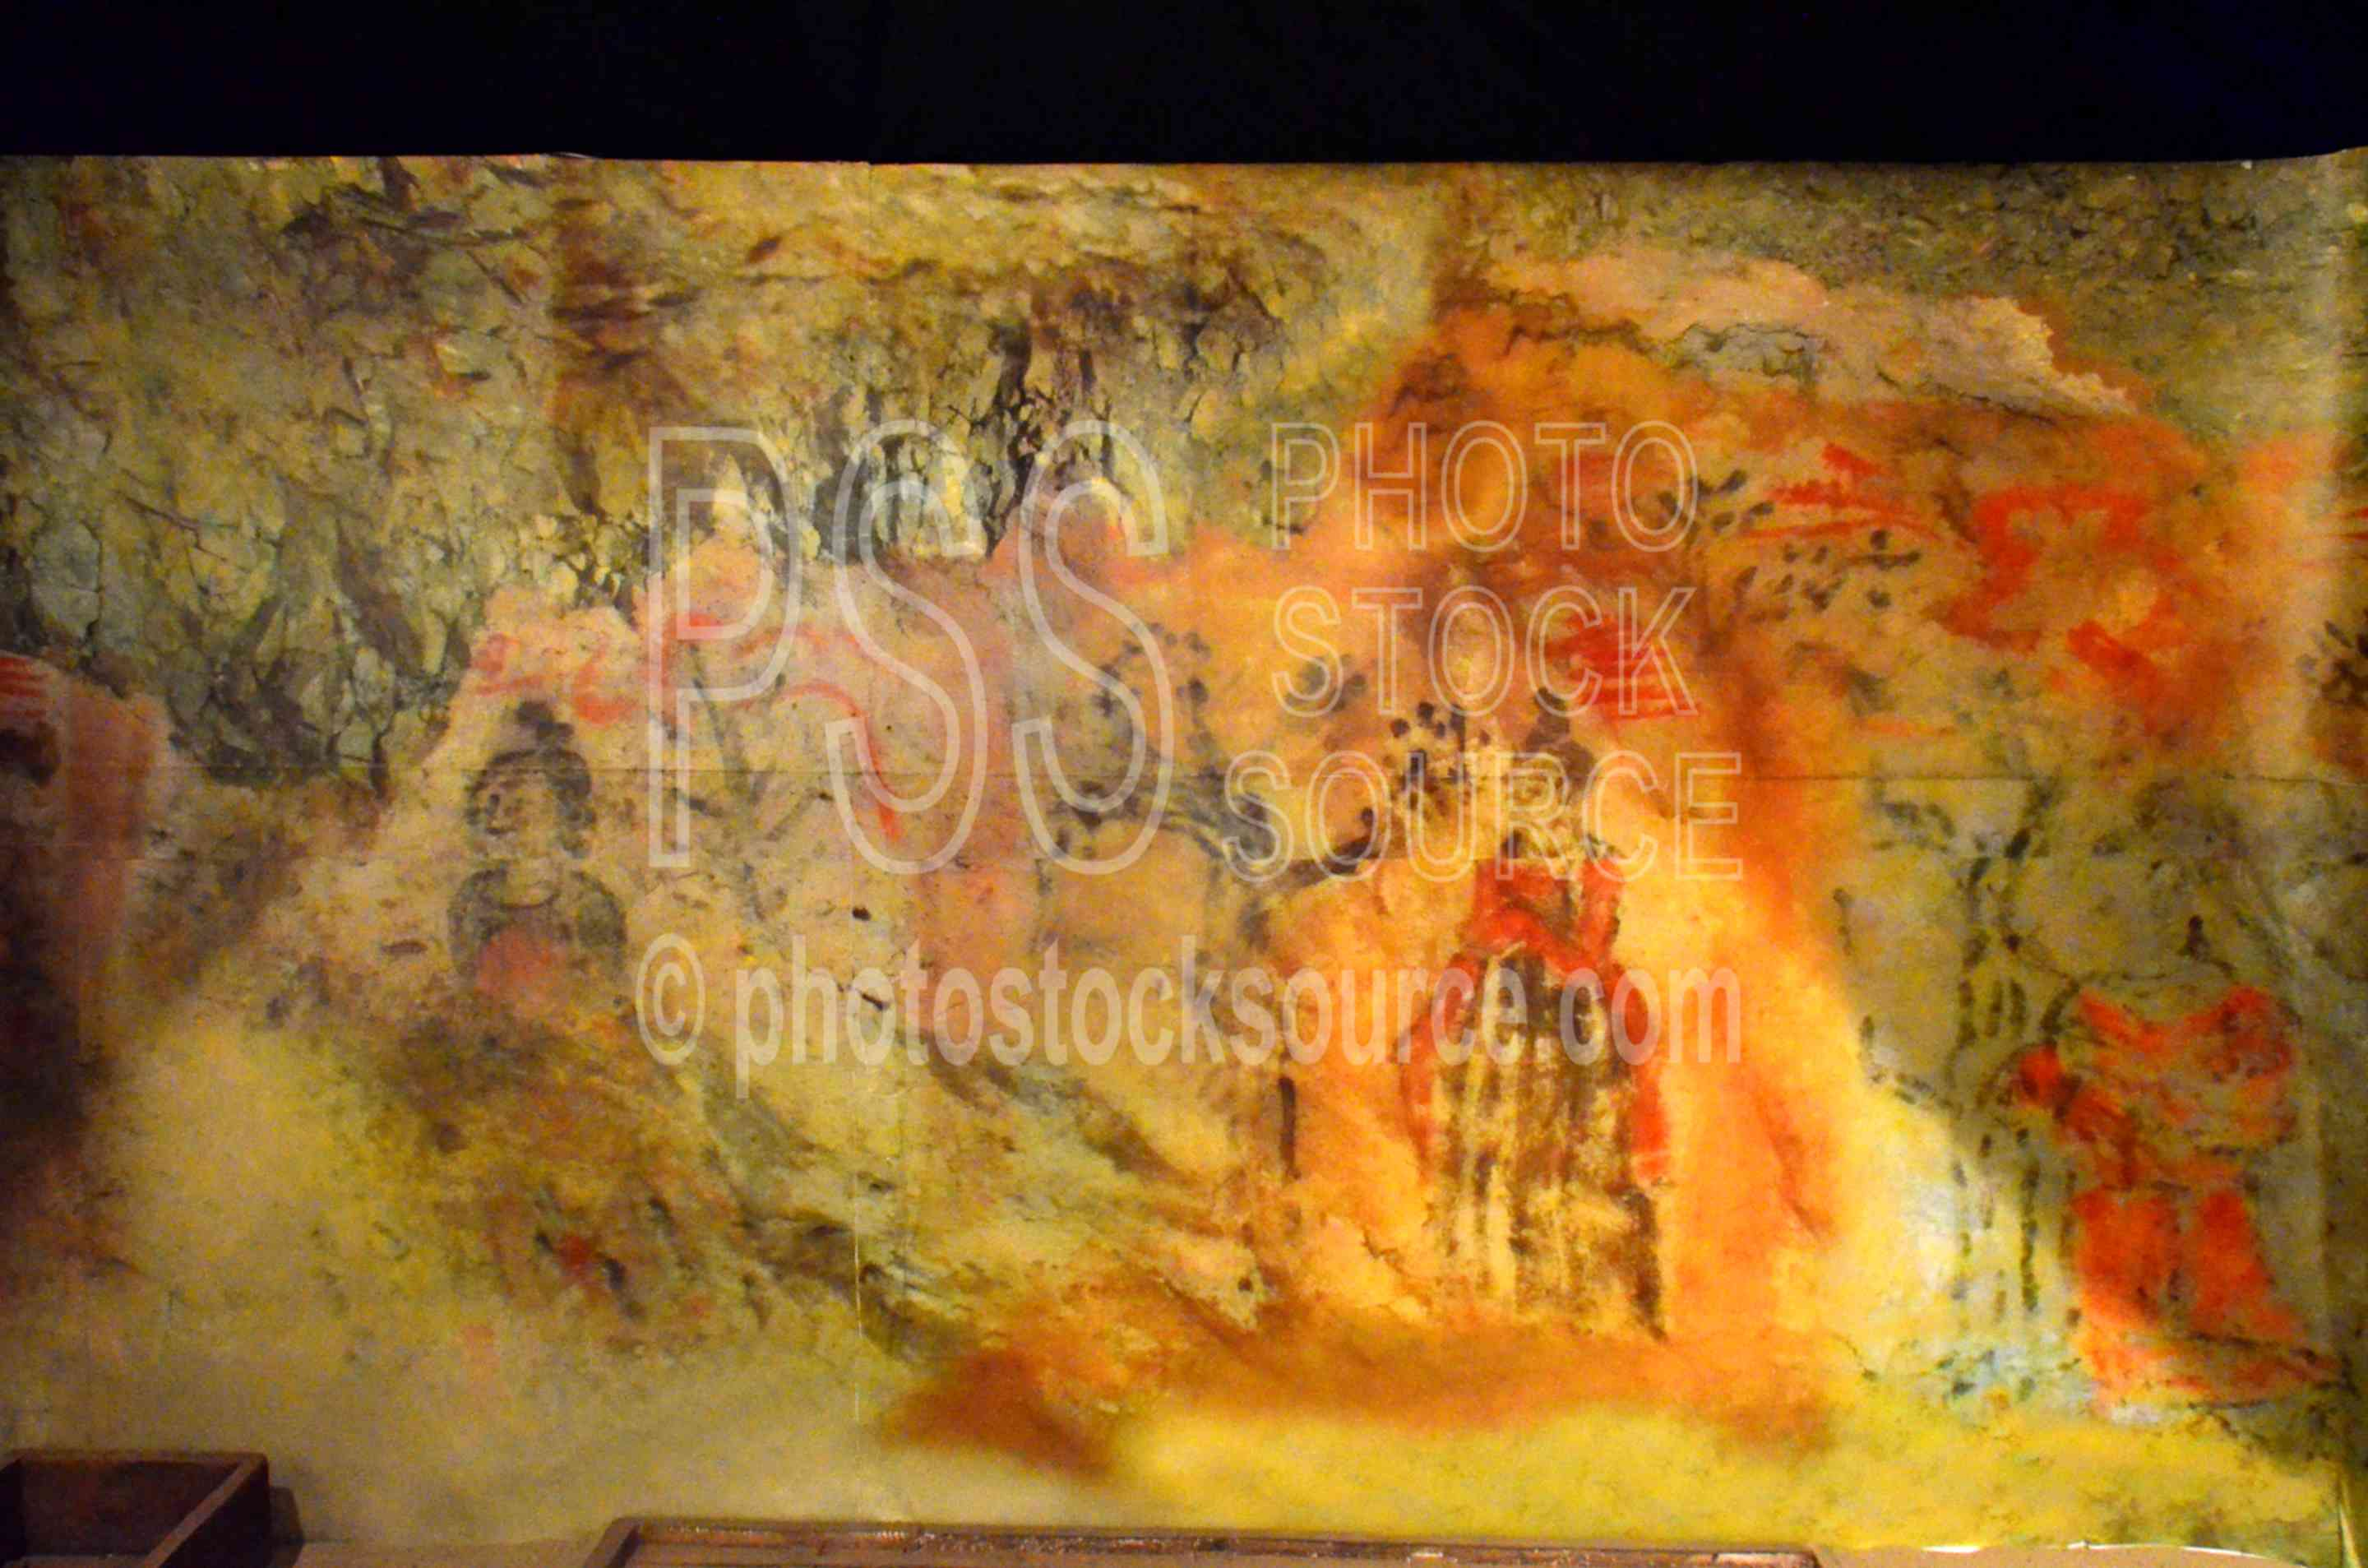 Photo of Tomb Murals by Photo Stock Source archeology